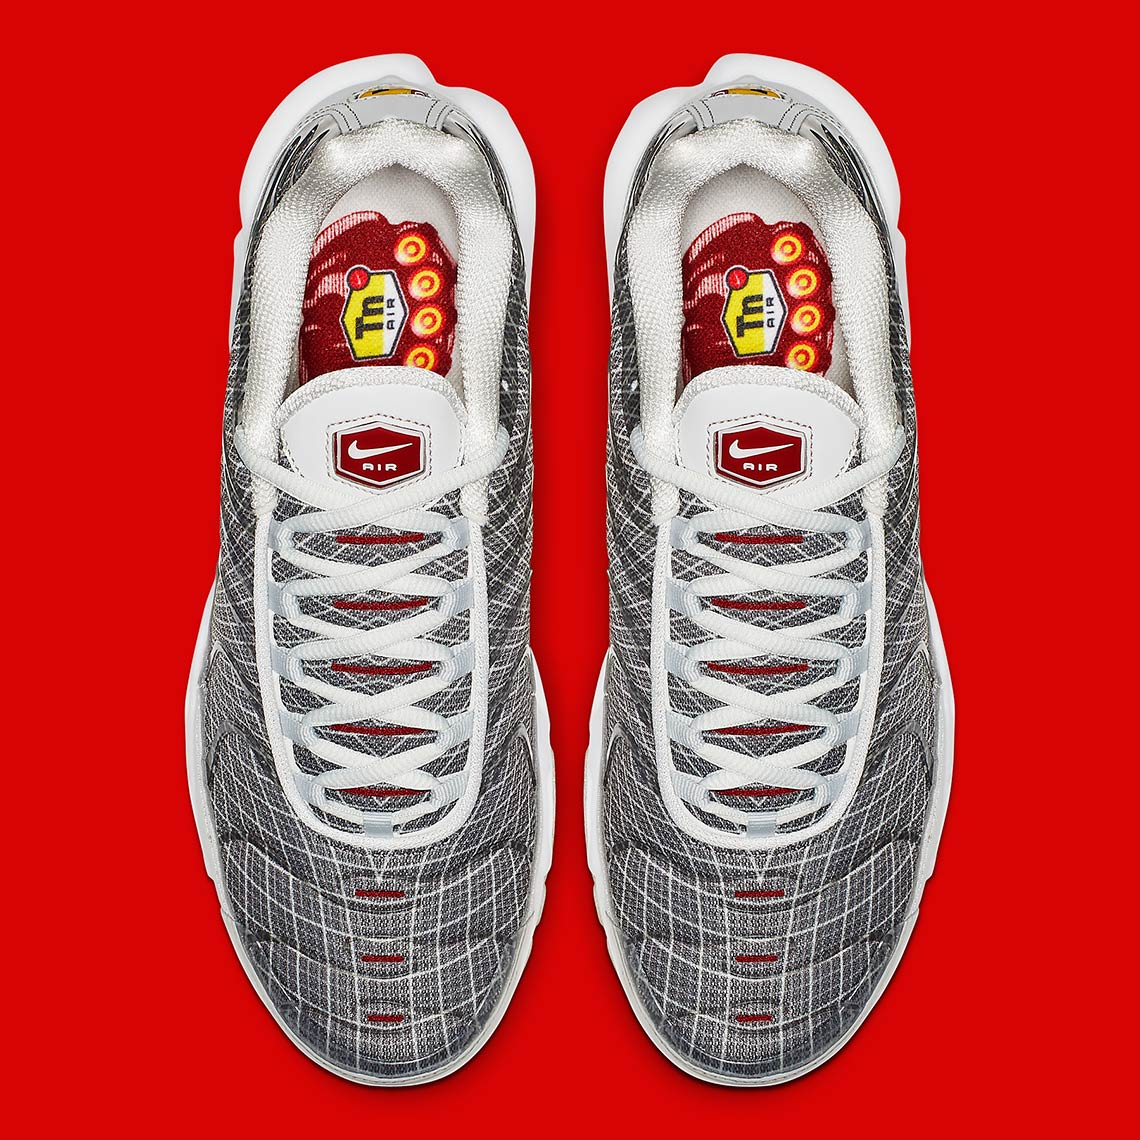 Nike Air Max Plus OG Grey Red BV1983 001 Info |